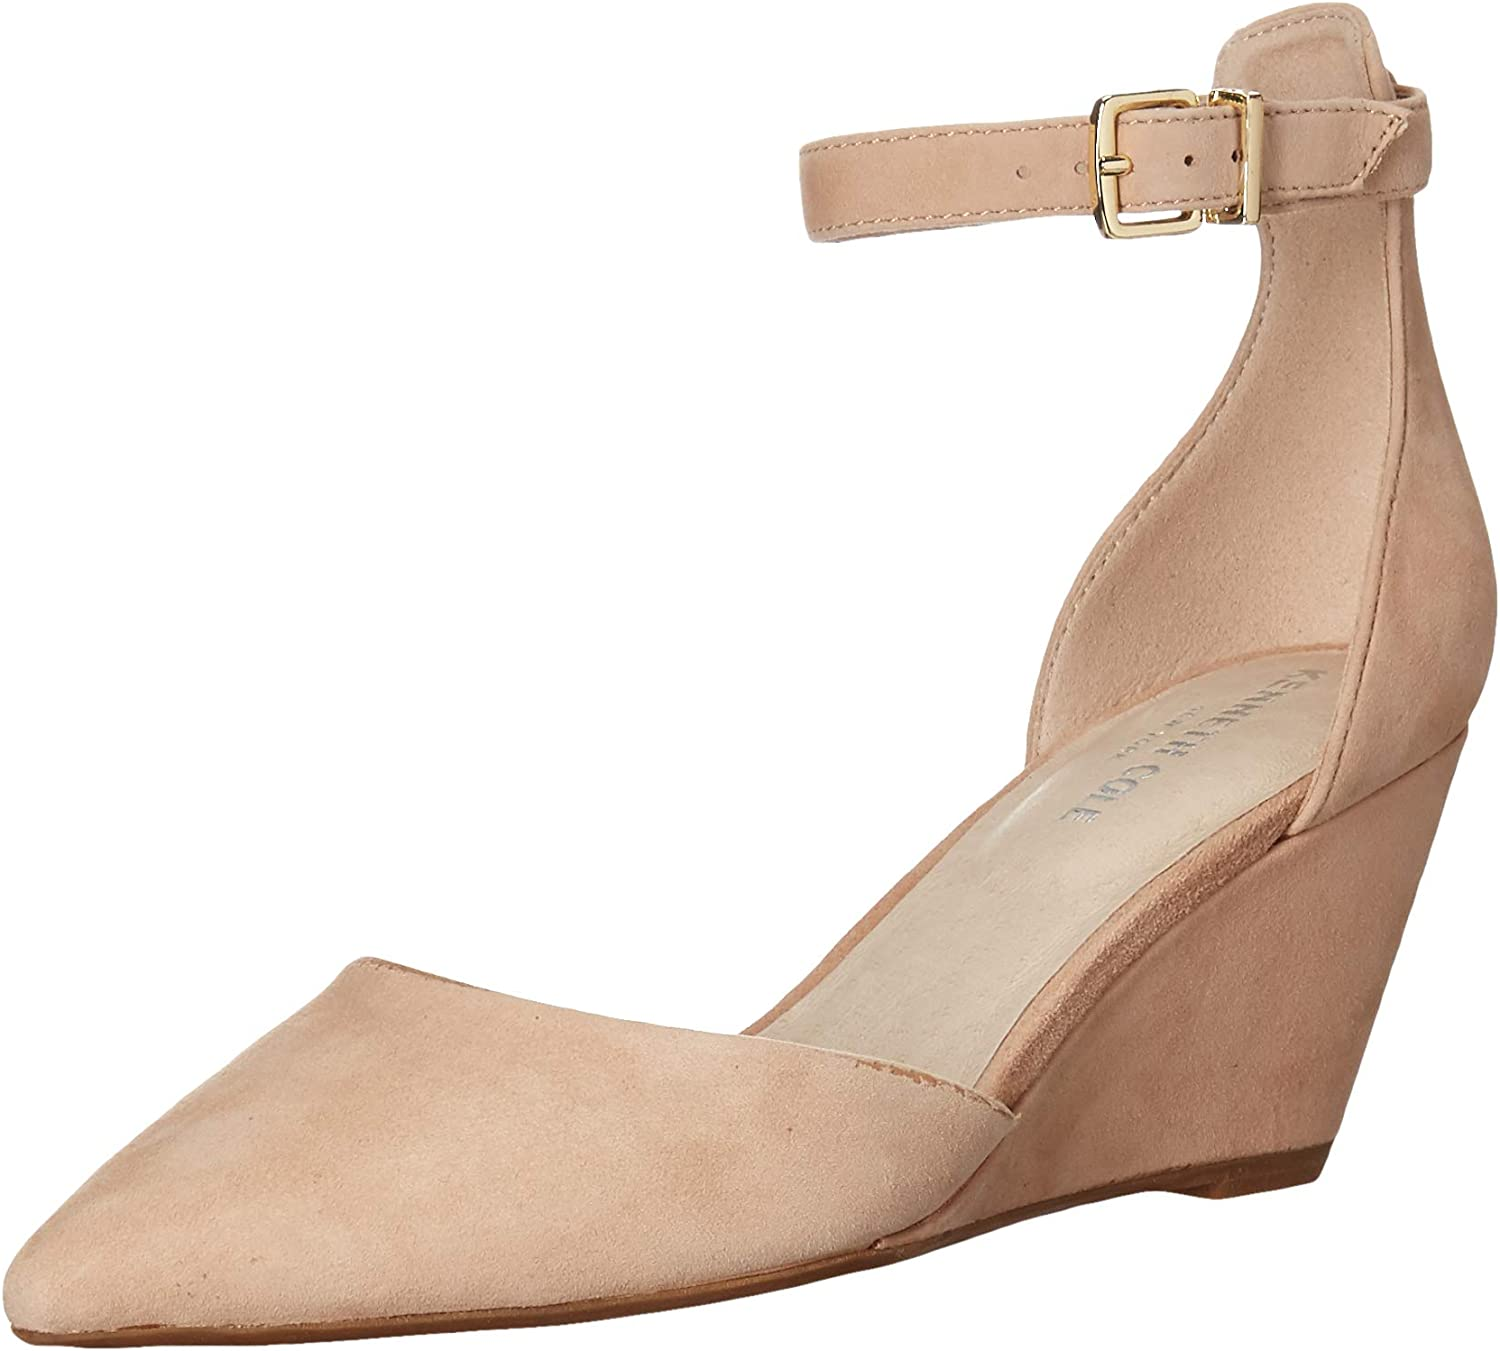 Kenneth Cole New York Womens Ellis Wedge Pump with Ankle Strap Pump